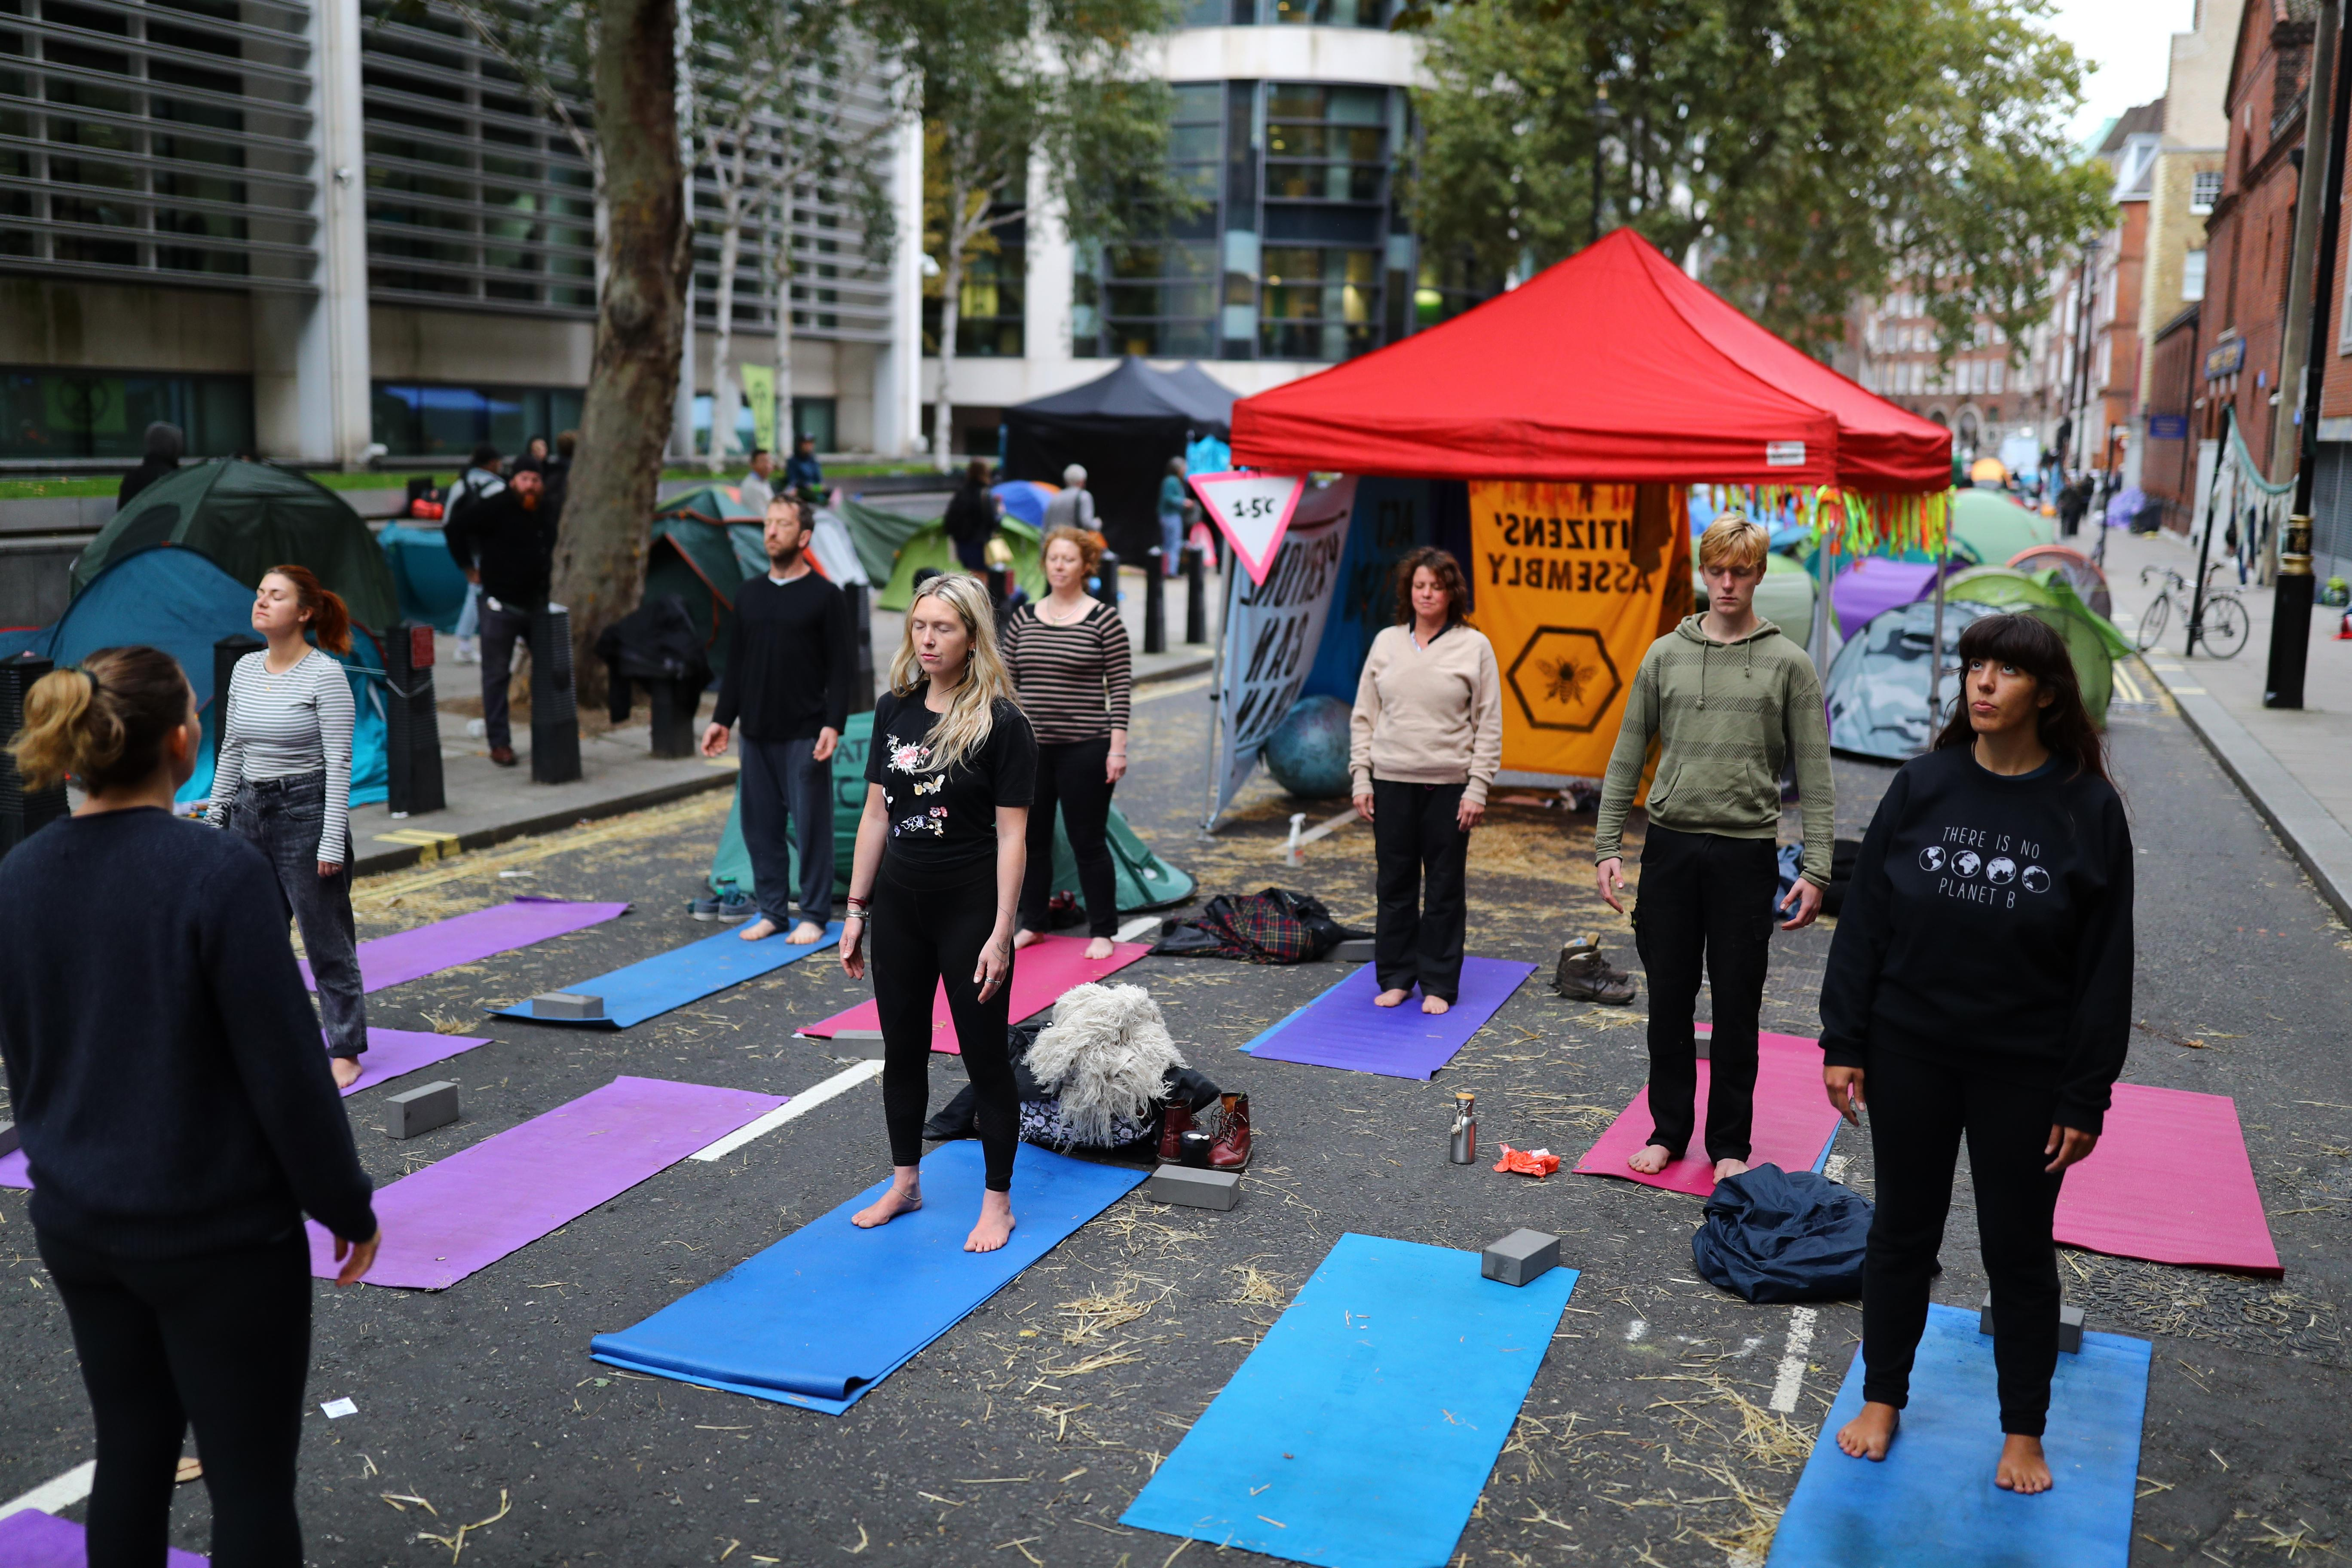 Early morning yoga at the Extinction Rebellion camp in Marsham Street, Westminster, London.